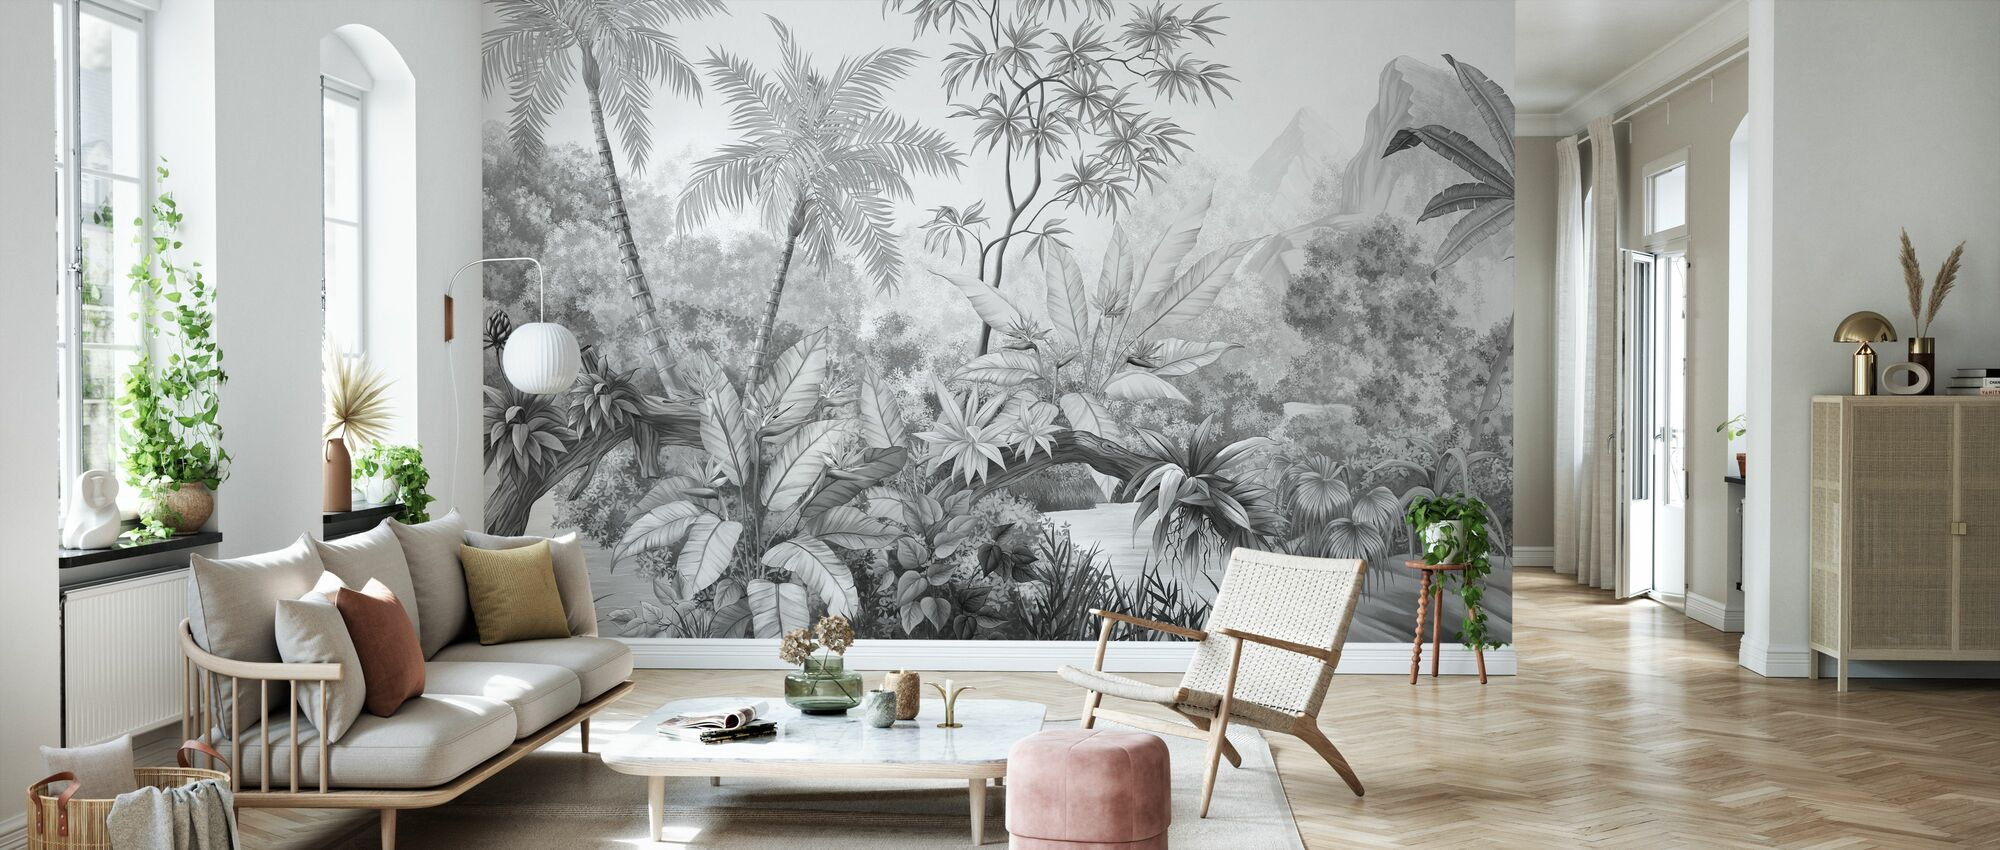 Tangled Jungle - Bw - Wallpaper - Living Room